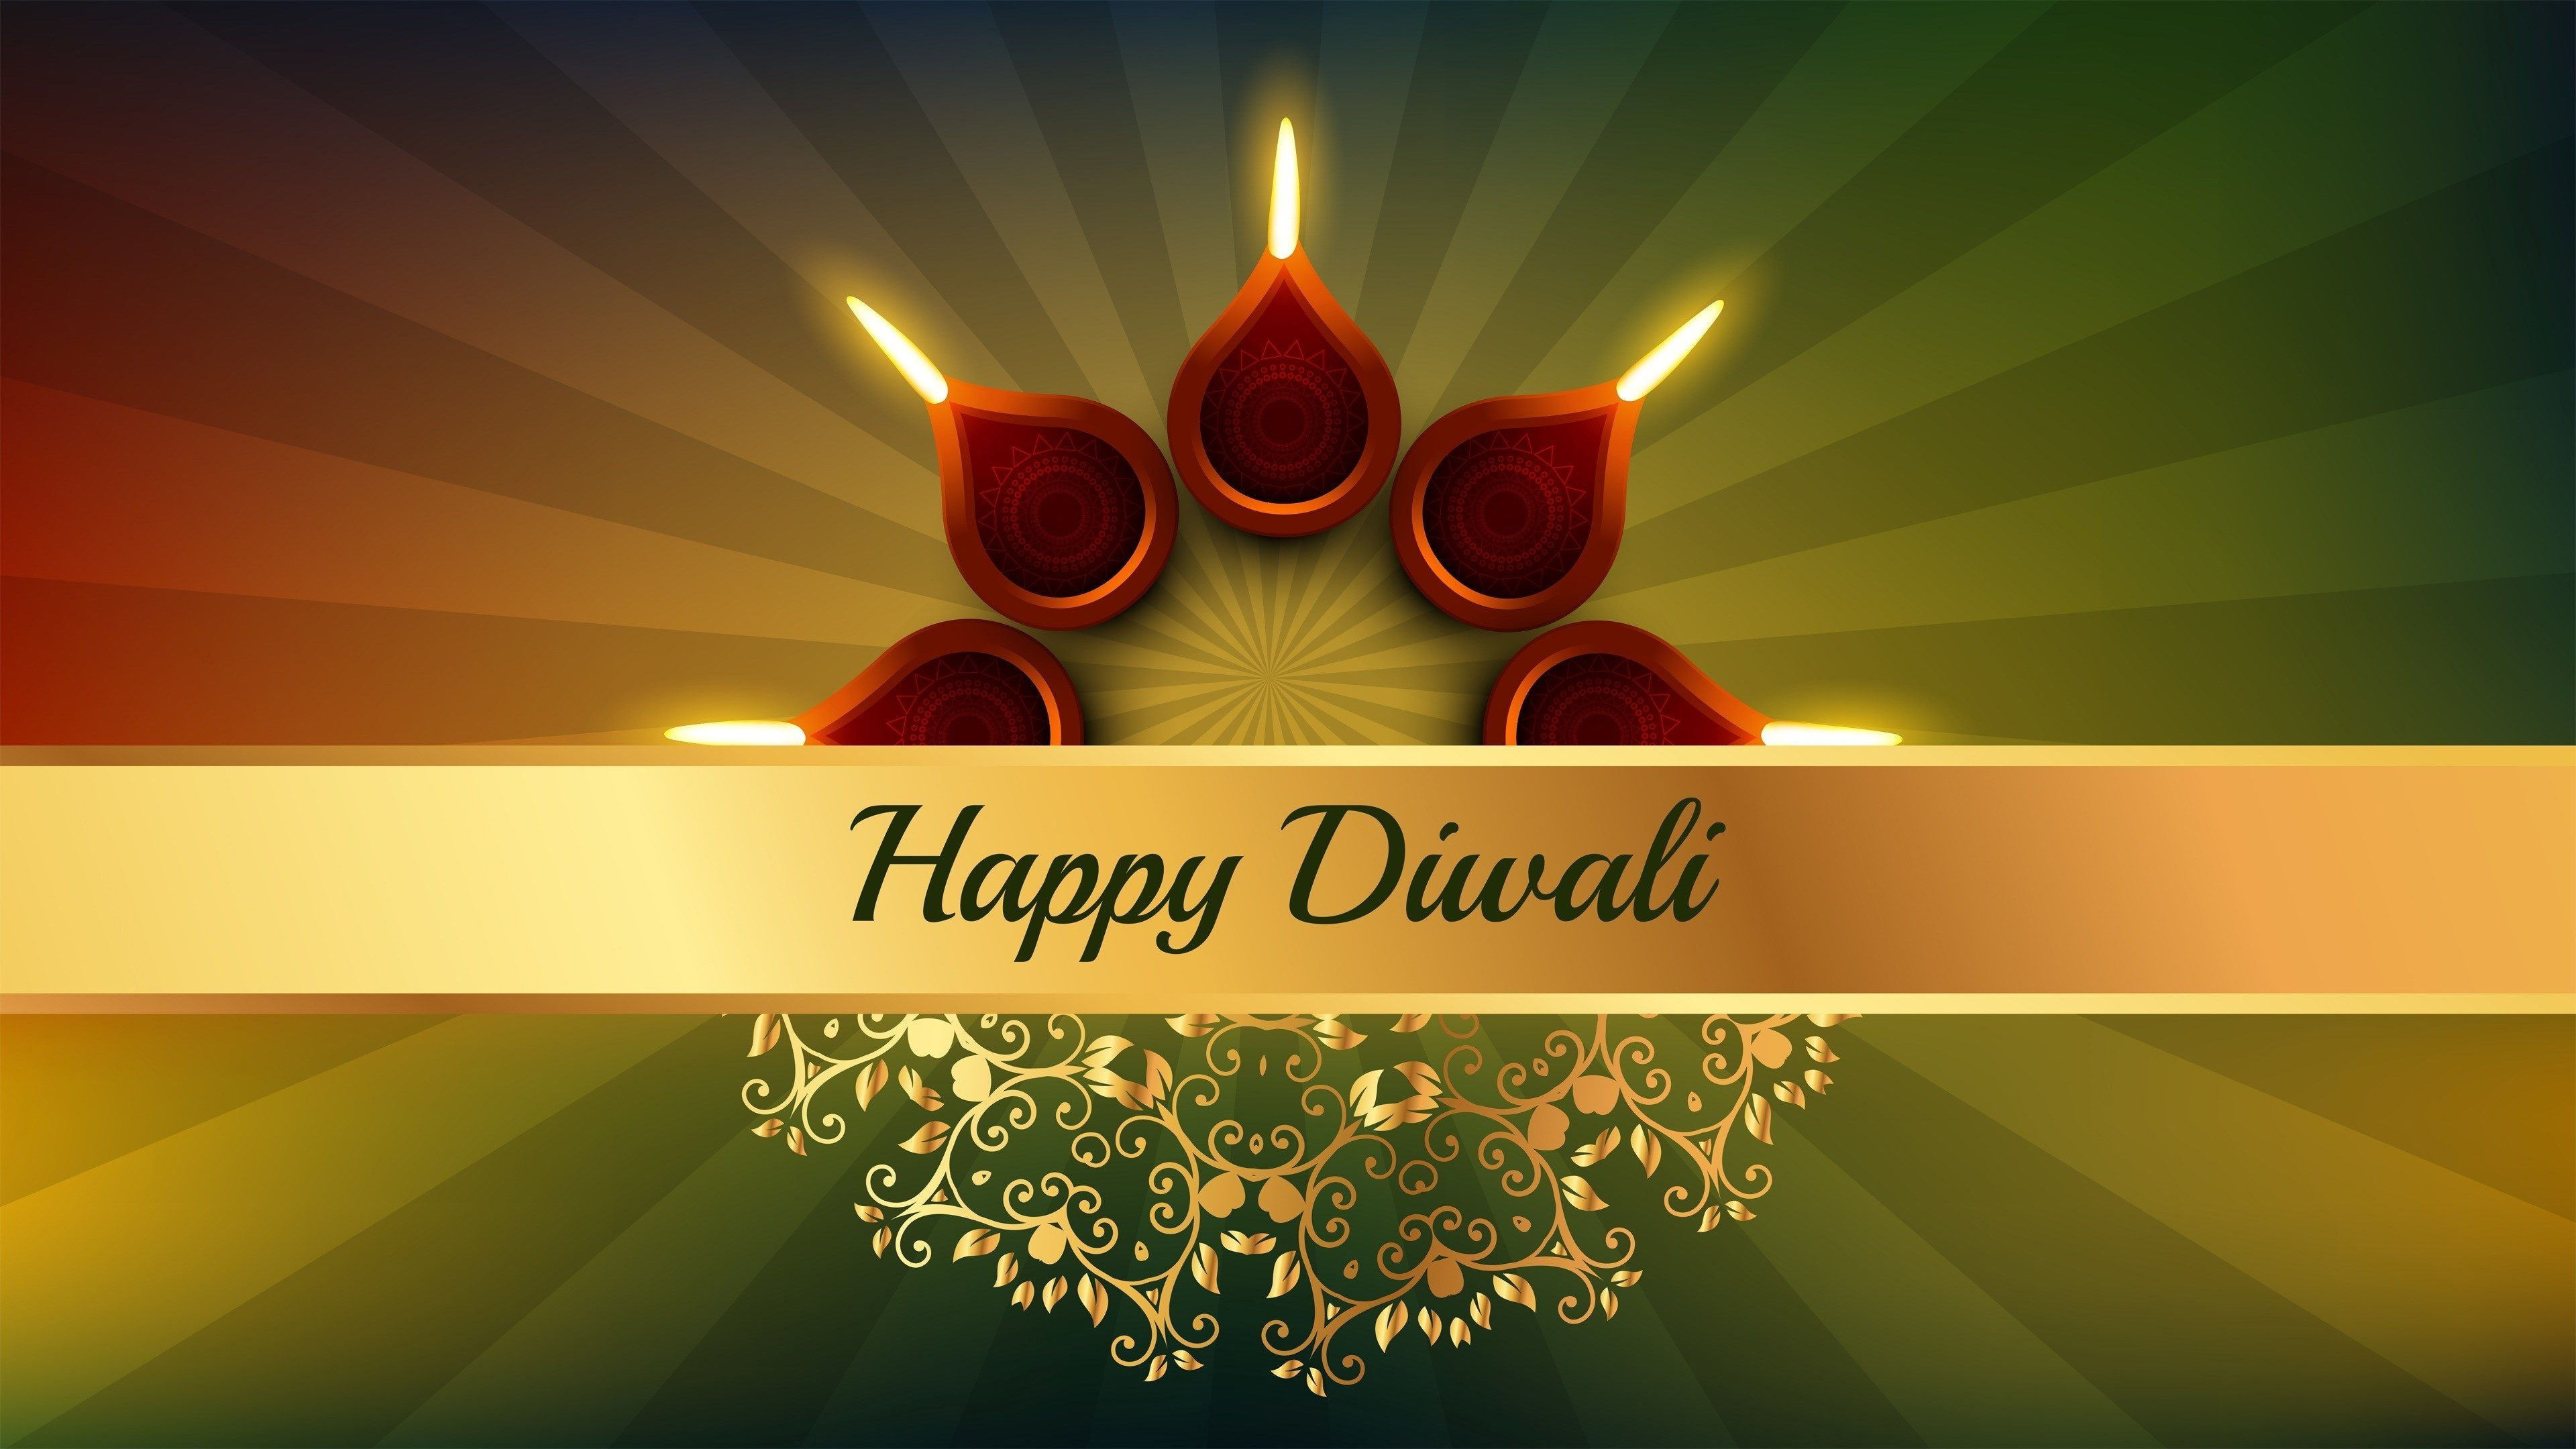 3840x2160 3840x2160 happy diwali 4k full wallpaper | Happy diwali ...